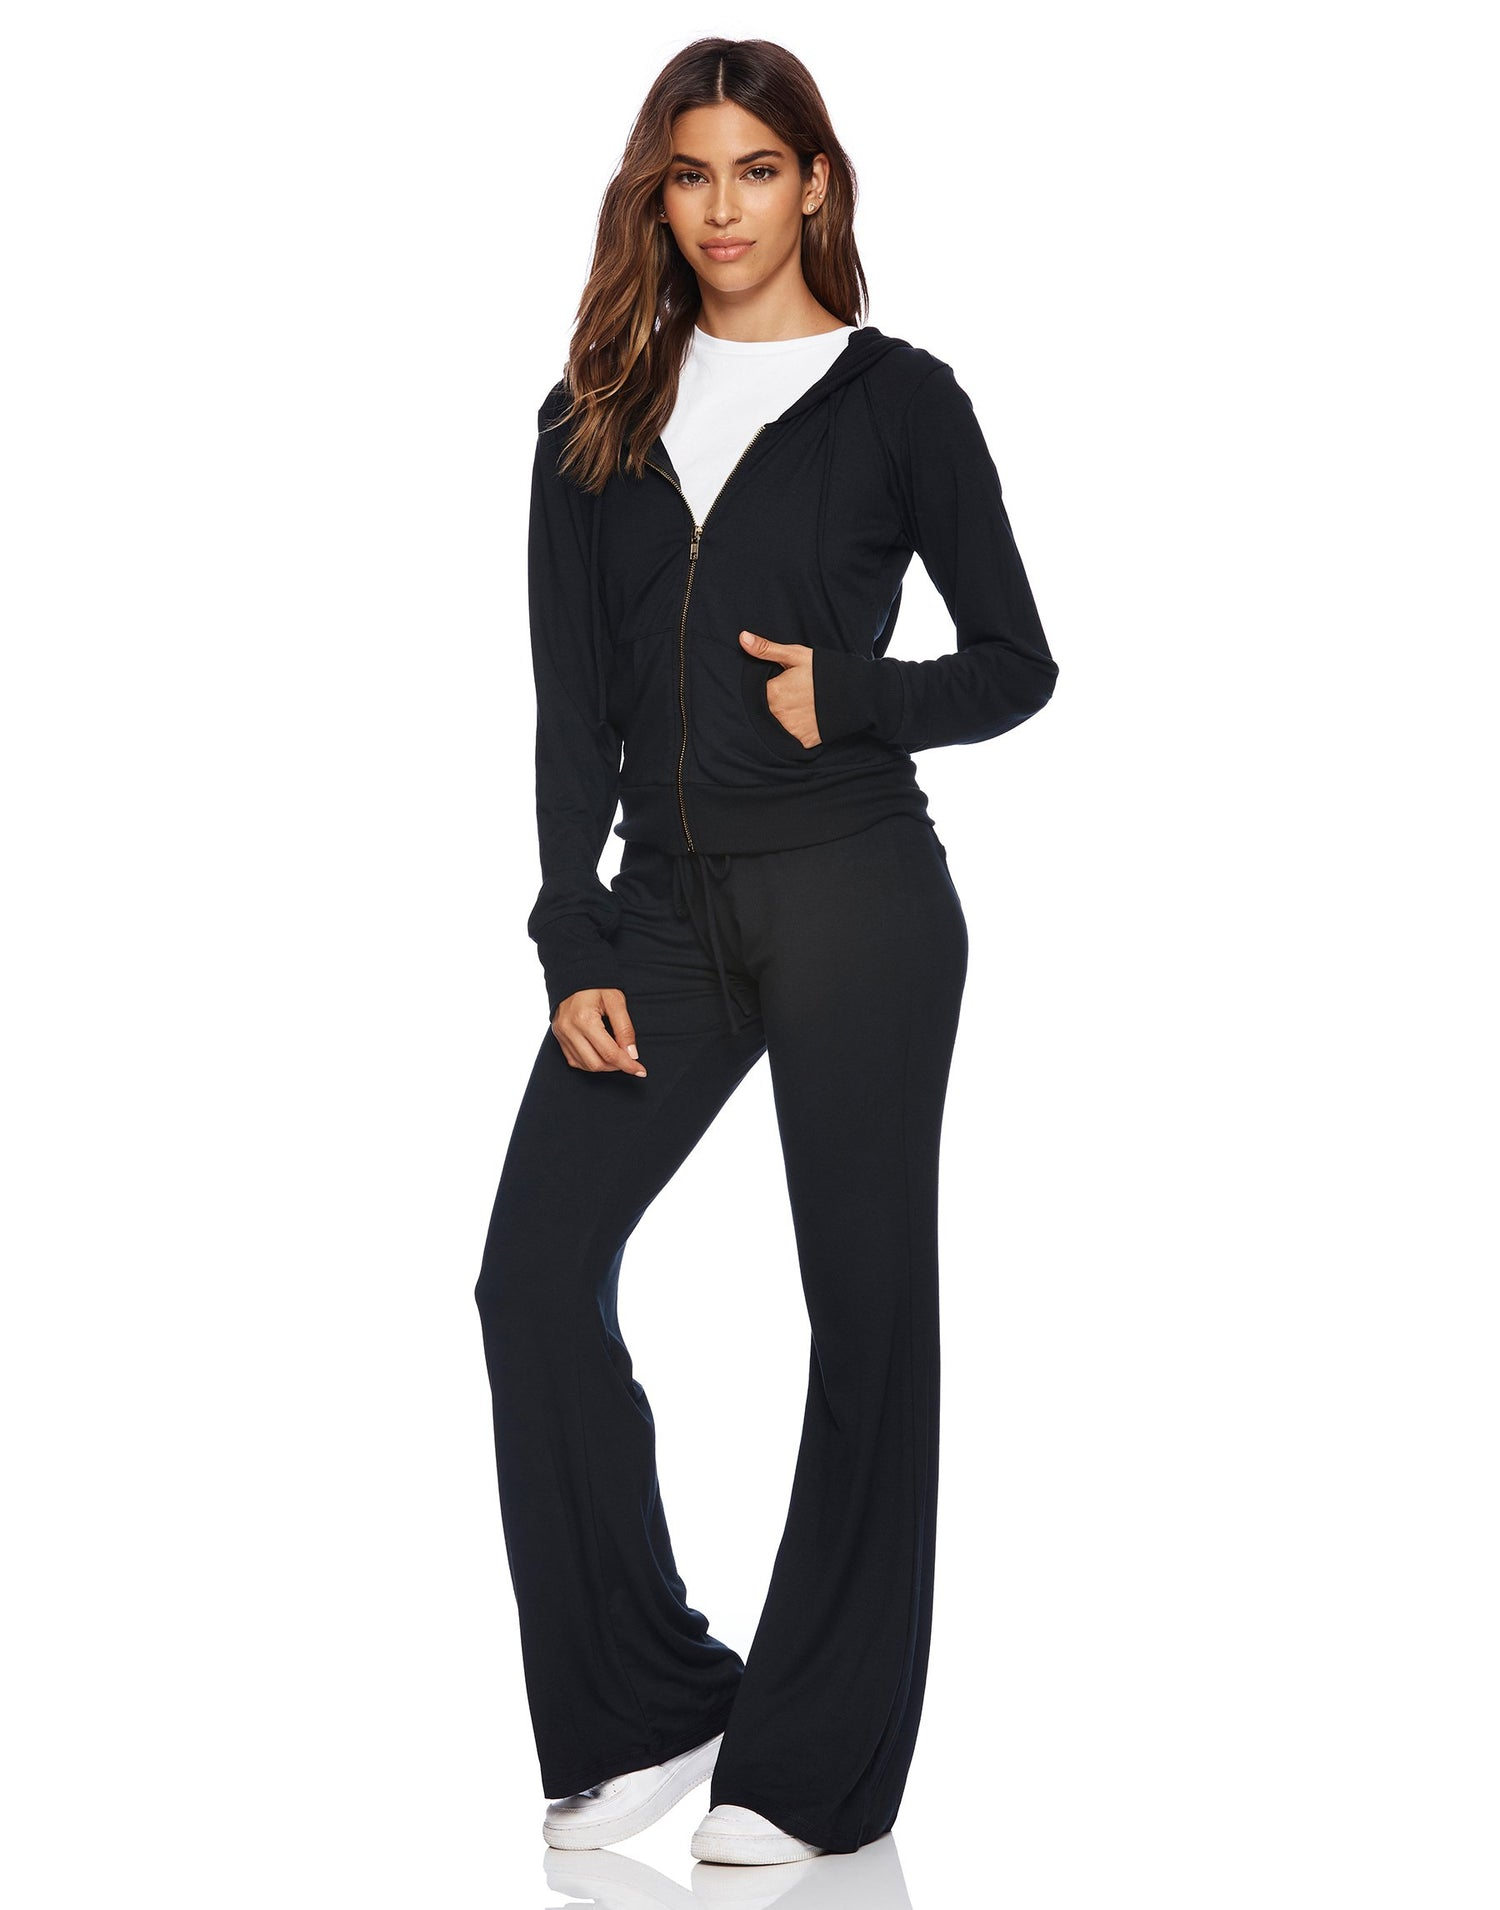 Maggie Pant in Black - alternate front view